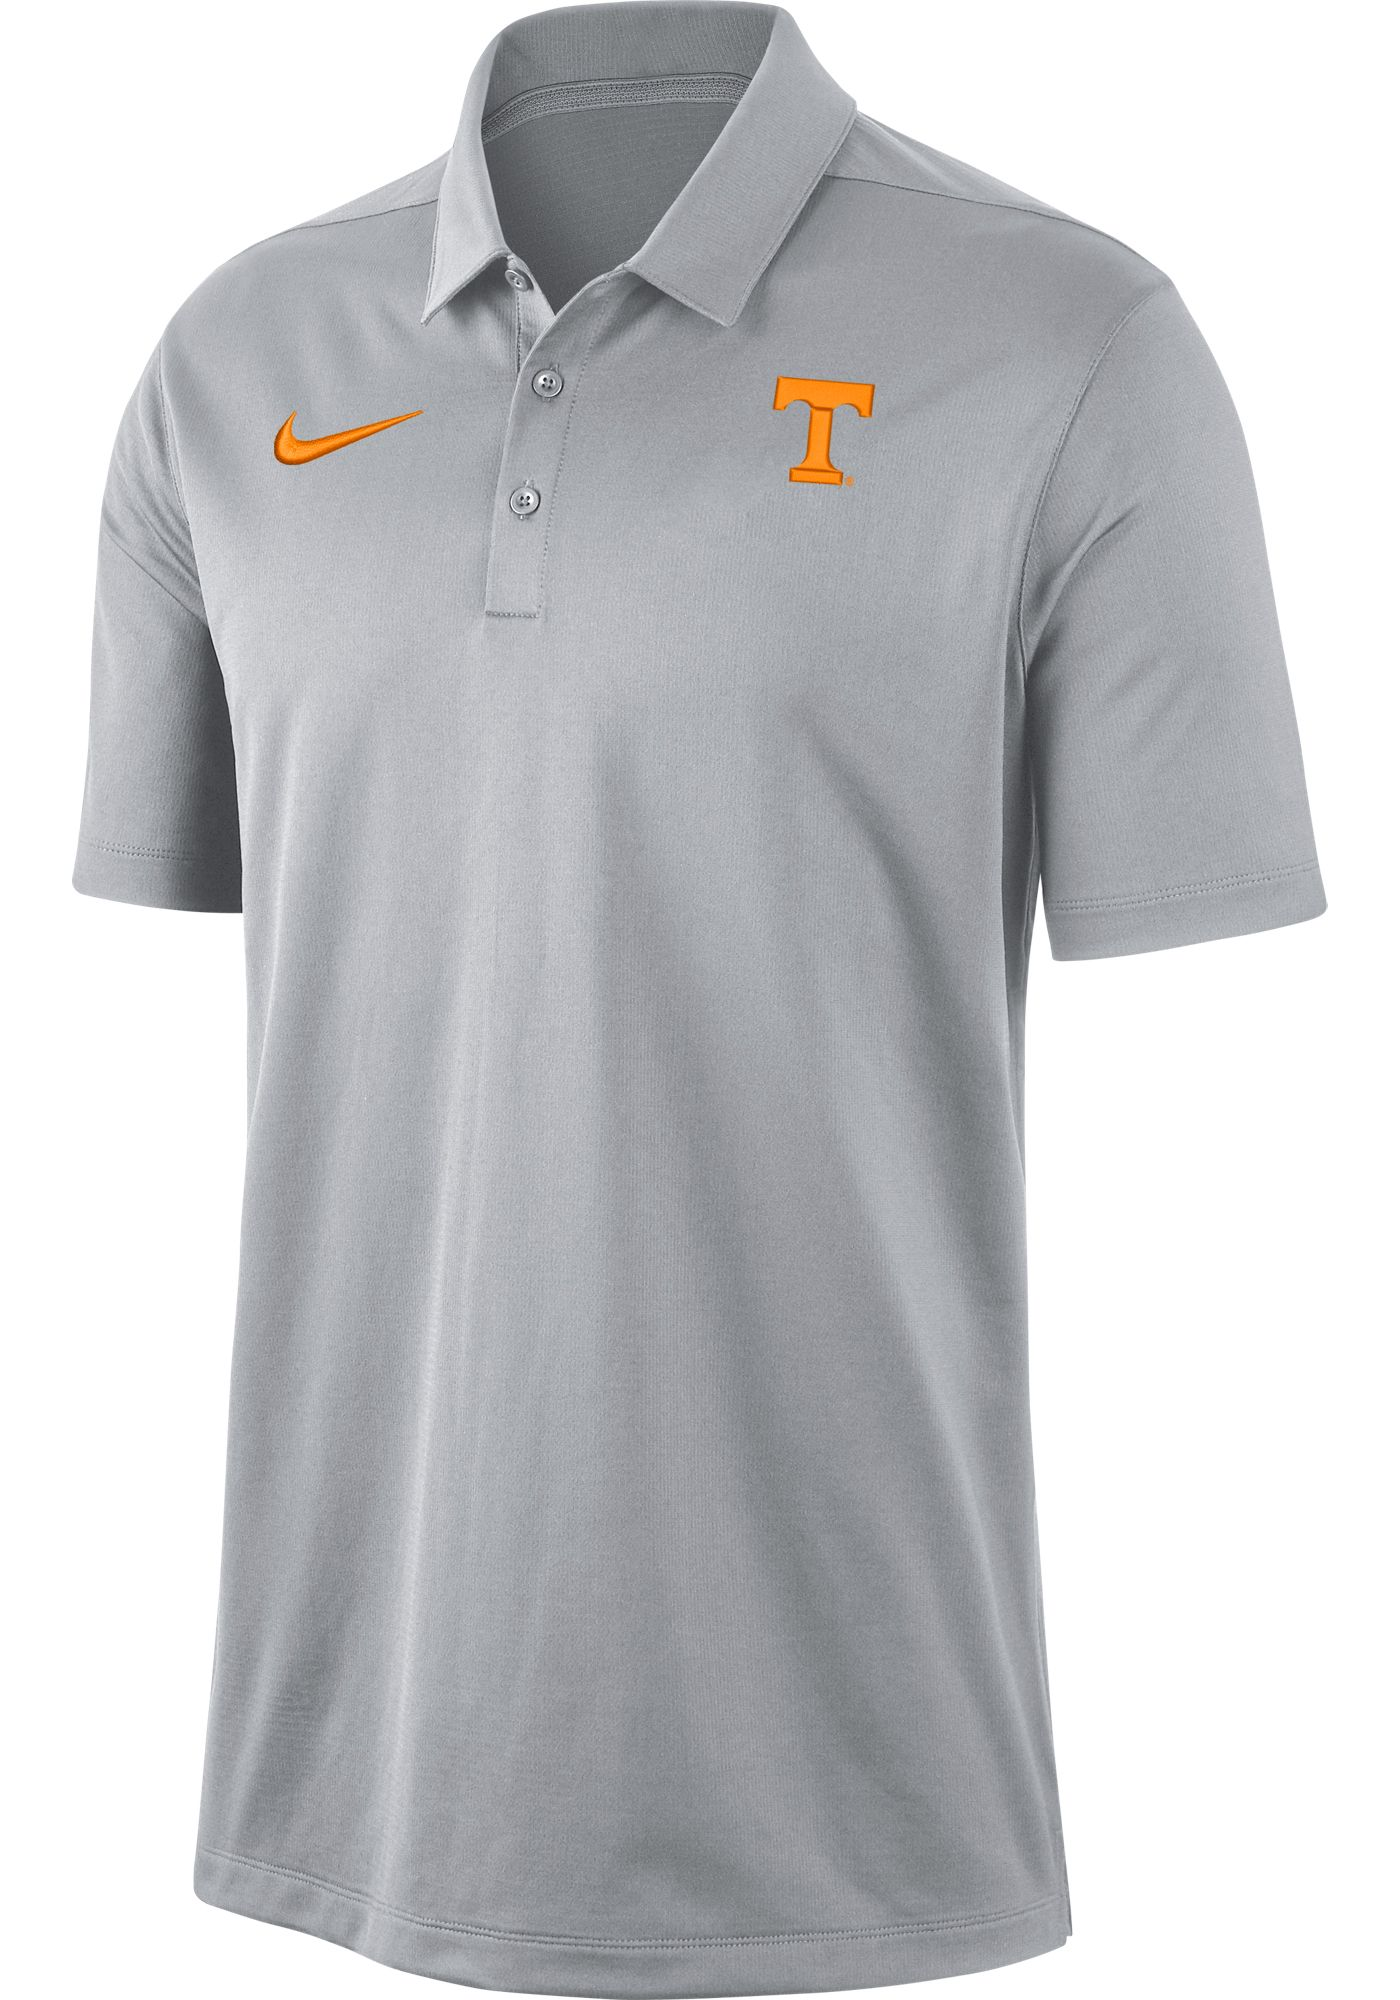 Nike Men's Tennessee Volunteers Grey Dri-FIT Franchise Polo